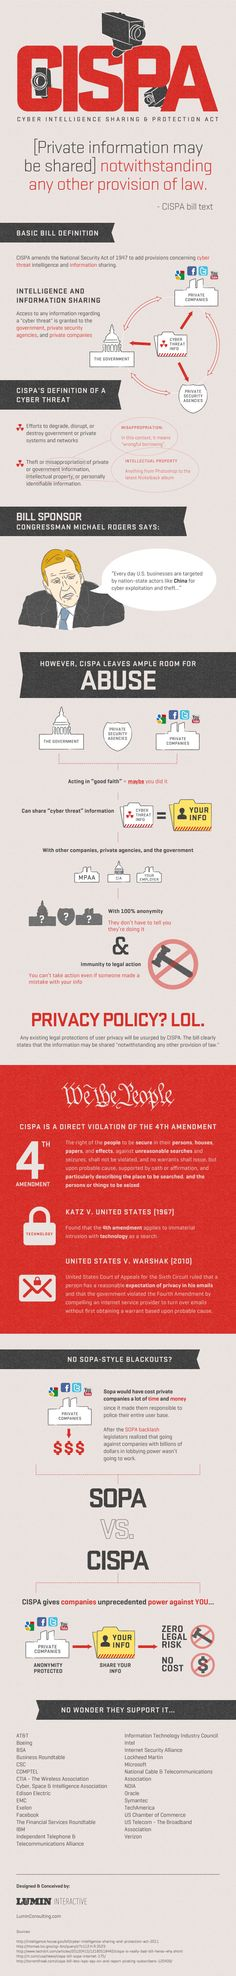 CISPA INFOGRAPHIC... be informed. Be active.